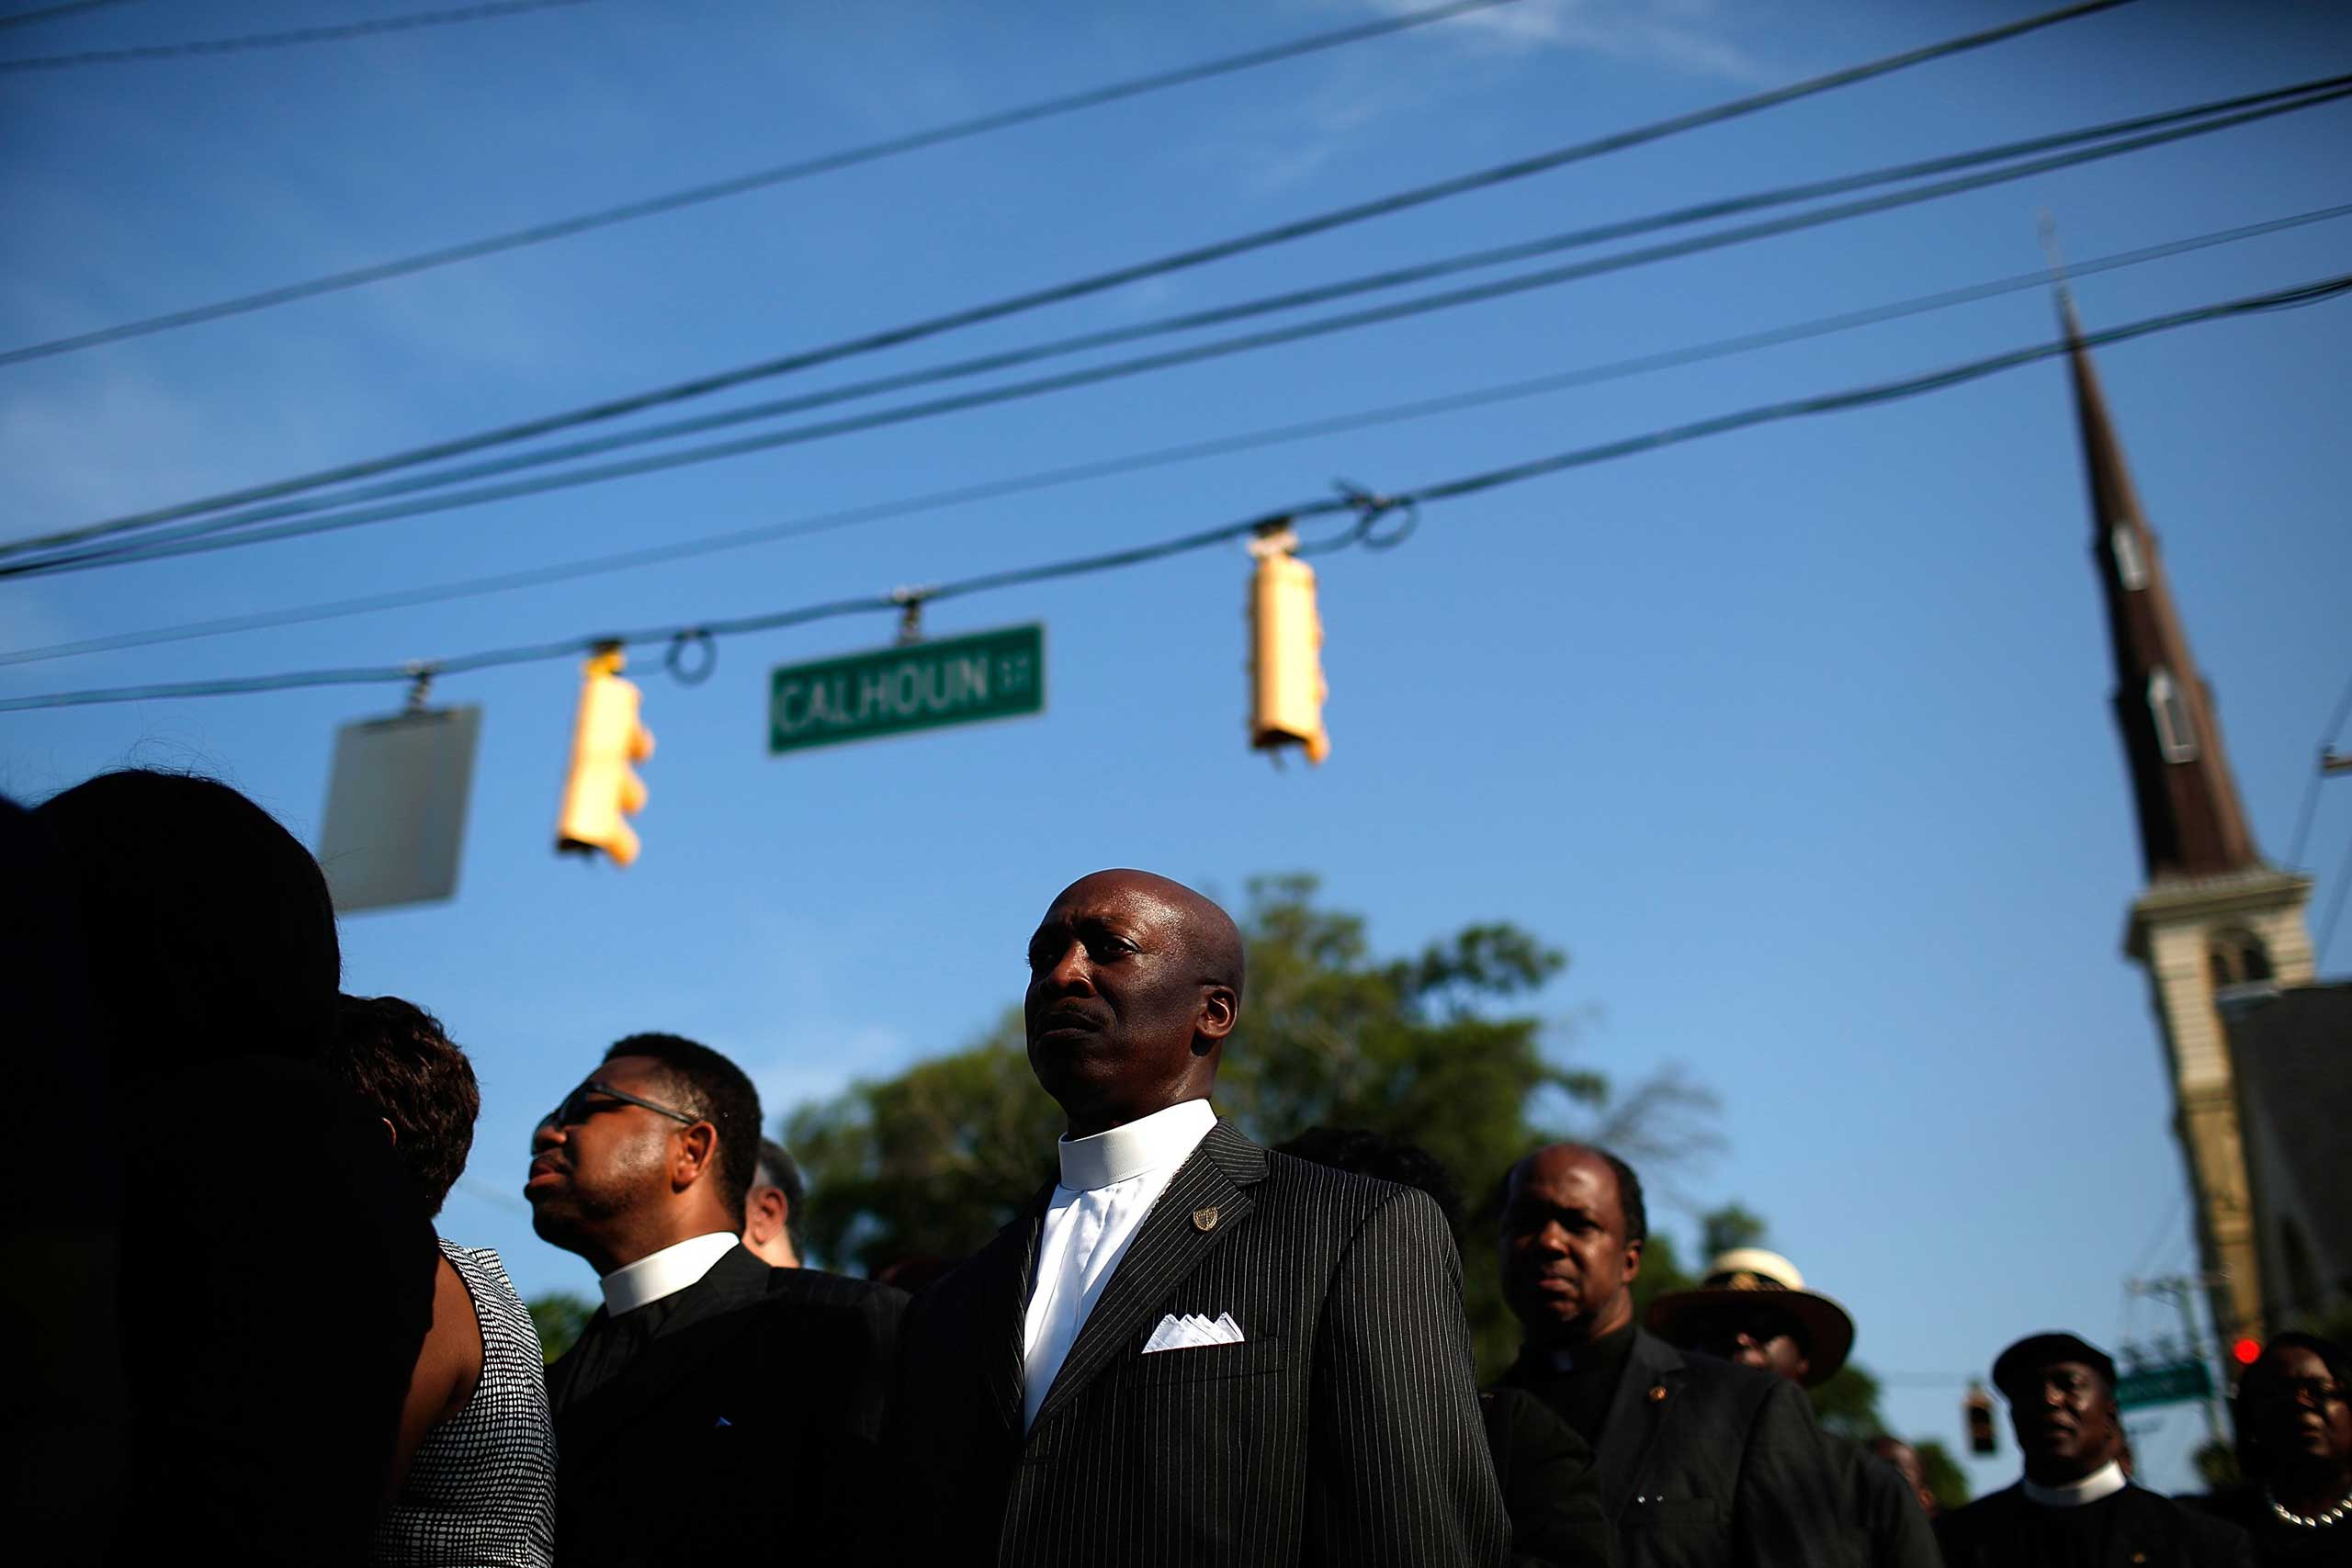 Members of the clergy wait to enter the funeral service for Rev. Clementa Pinckney in Charleston, S.C. on June 26, 2015.